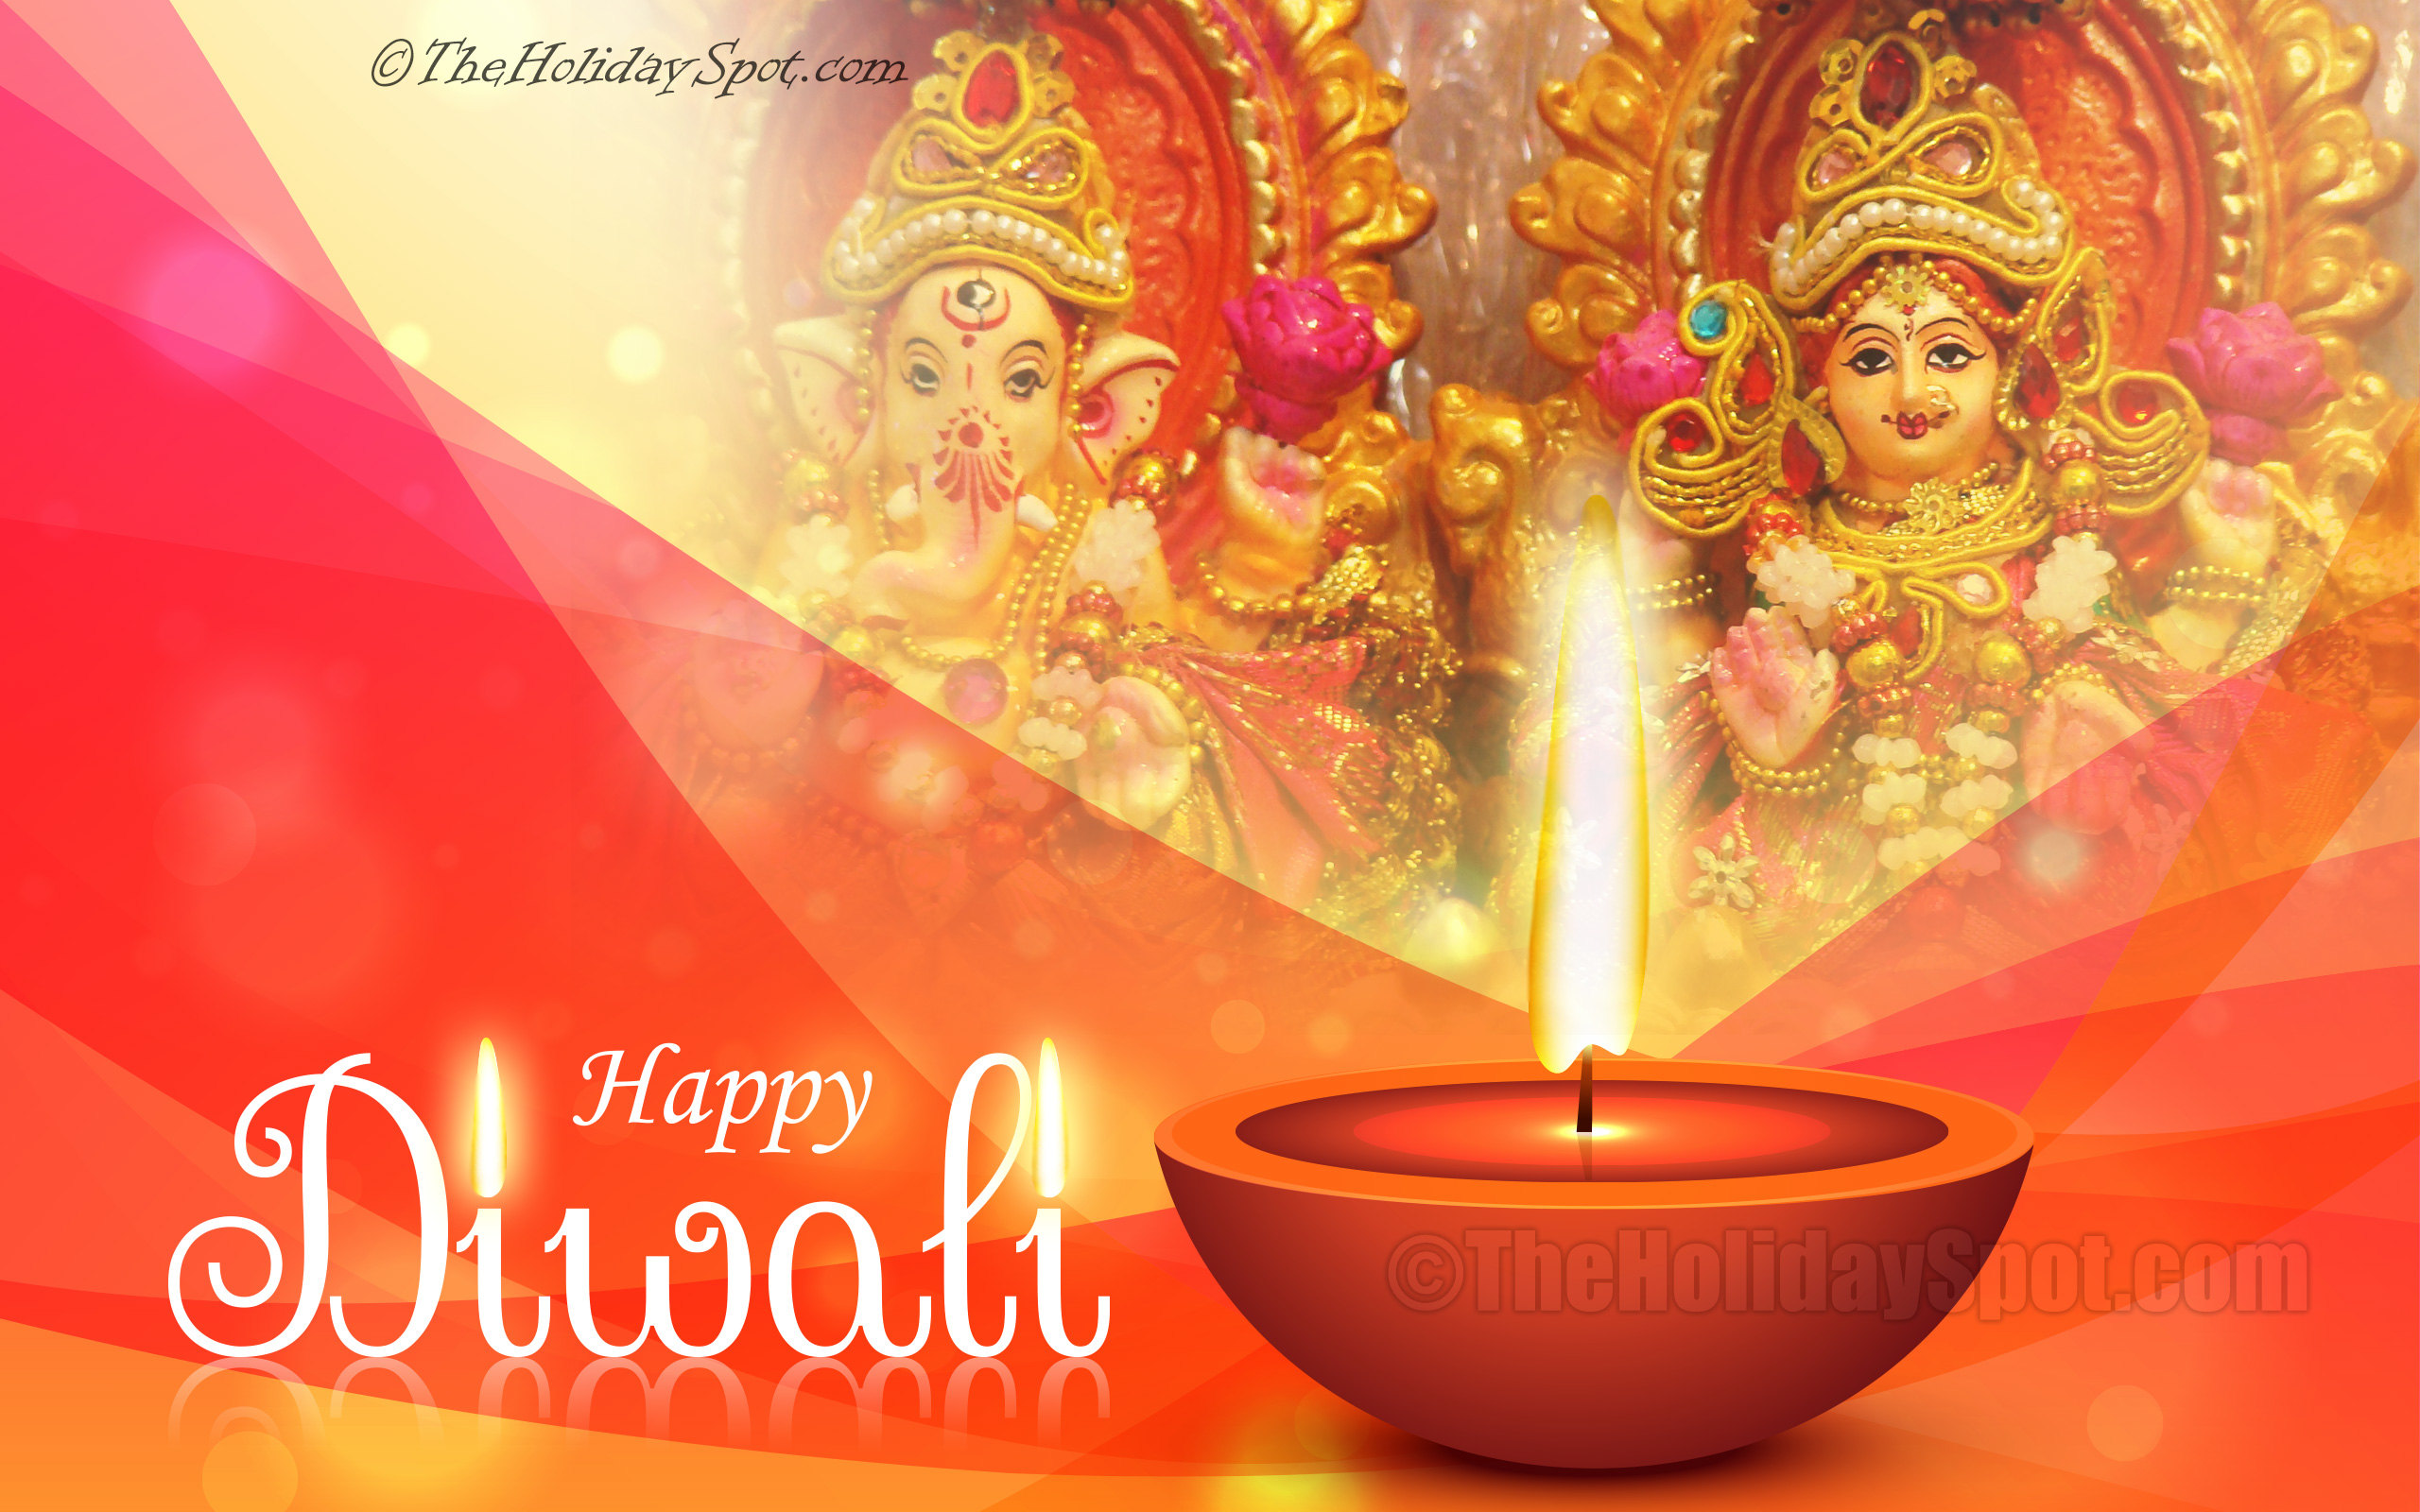 Wallpaper download diwali - Hd Diwali Wallpaper Of Lakshmi And Ganesh New